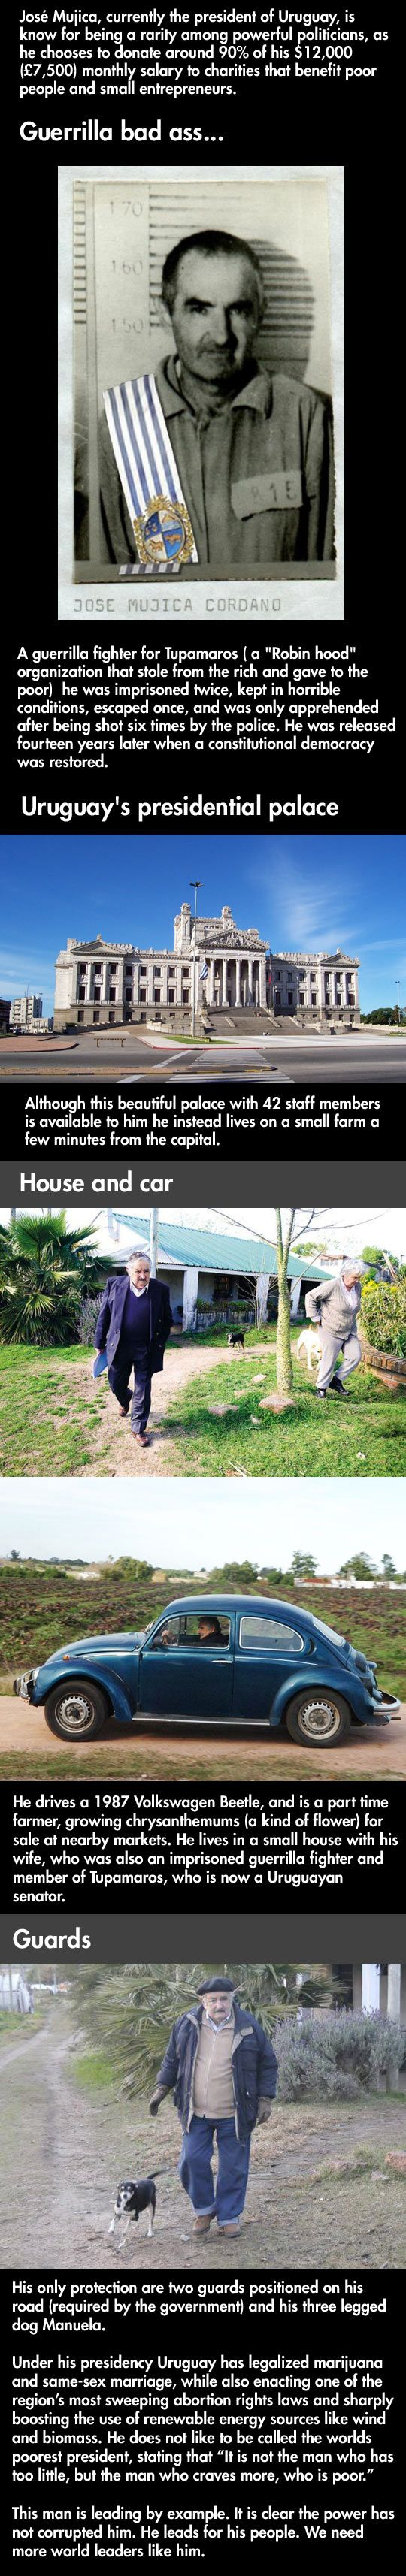 "The ""poorest"" president in the world is an inspiration to us all for giving back to the poor, for NOT living in the presidential palace and having a 3-legged dog to guard him."